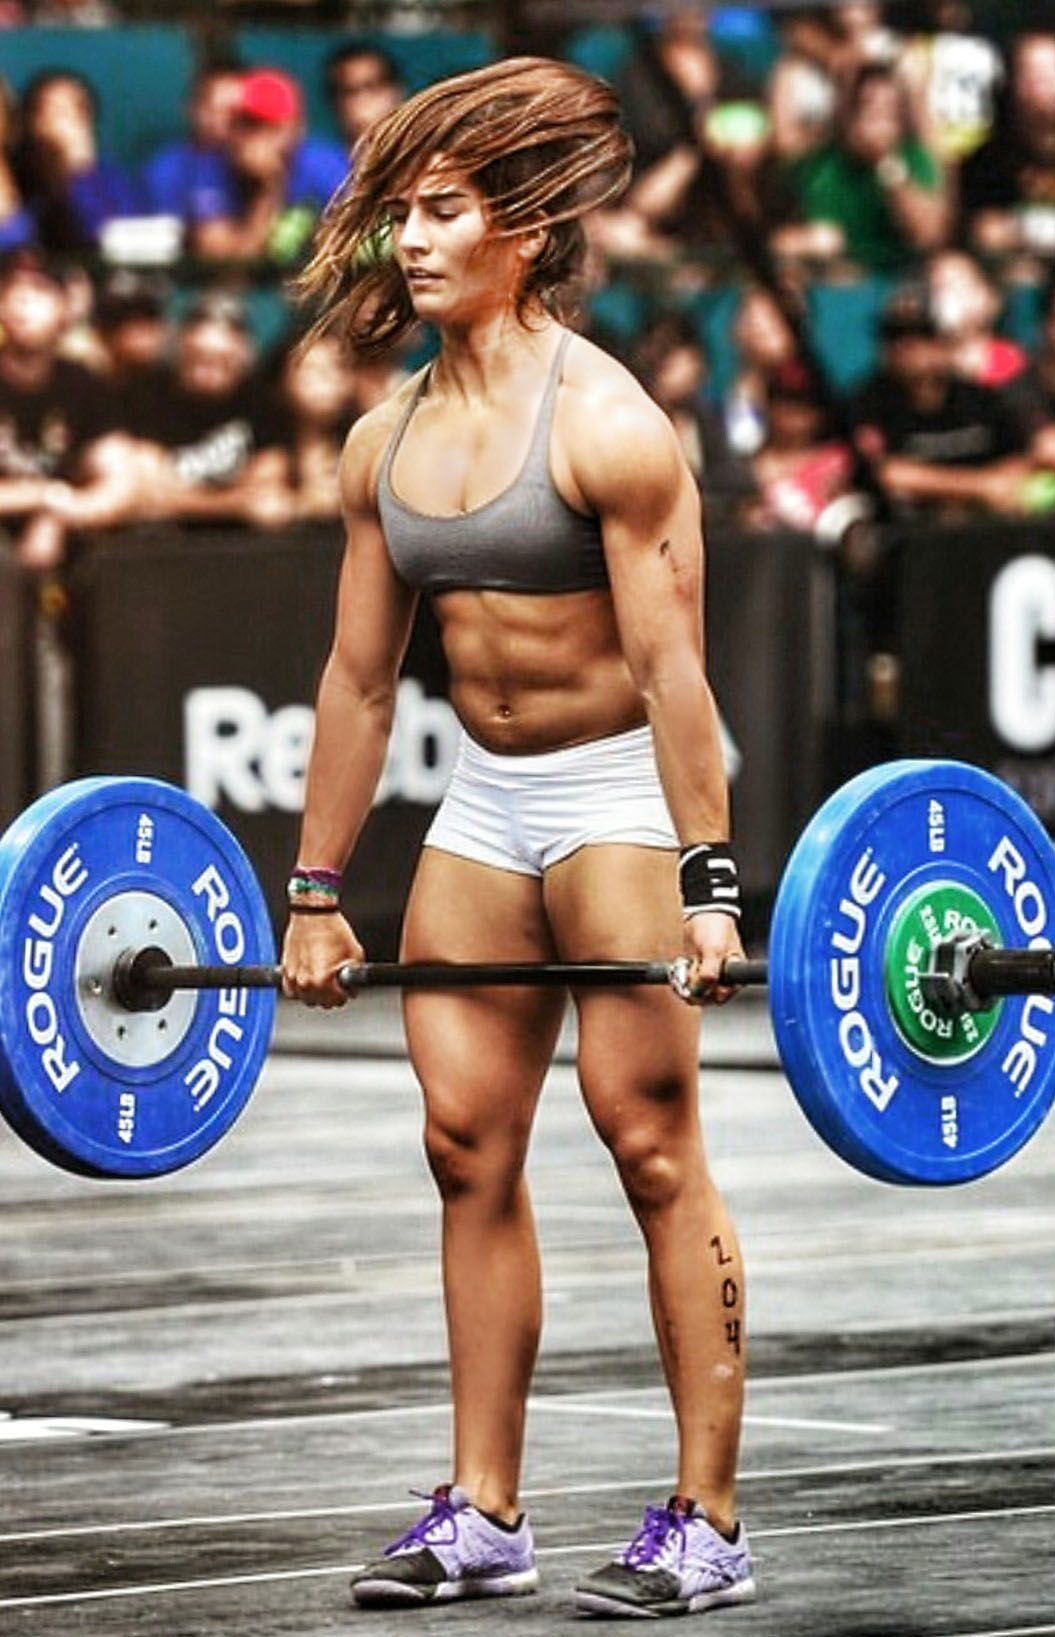 Lauren Fisher crossfit games athlete - Fit girls with muscles who are hot  and sexy to use as motivation